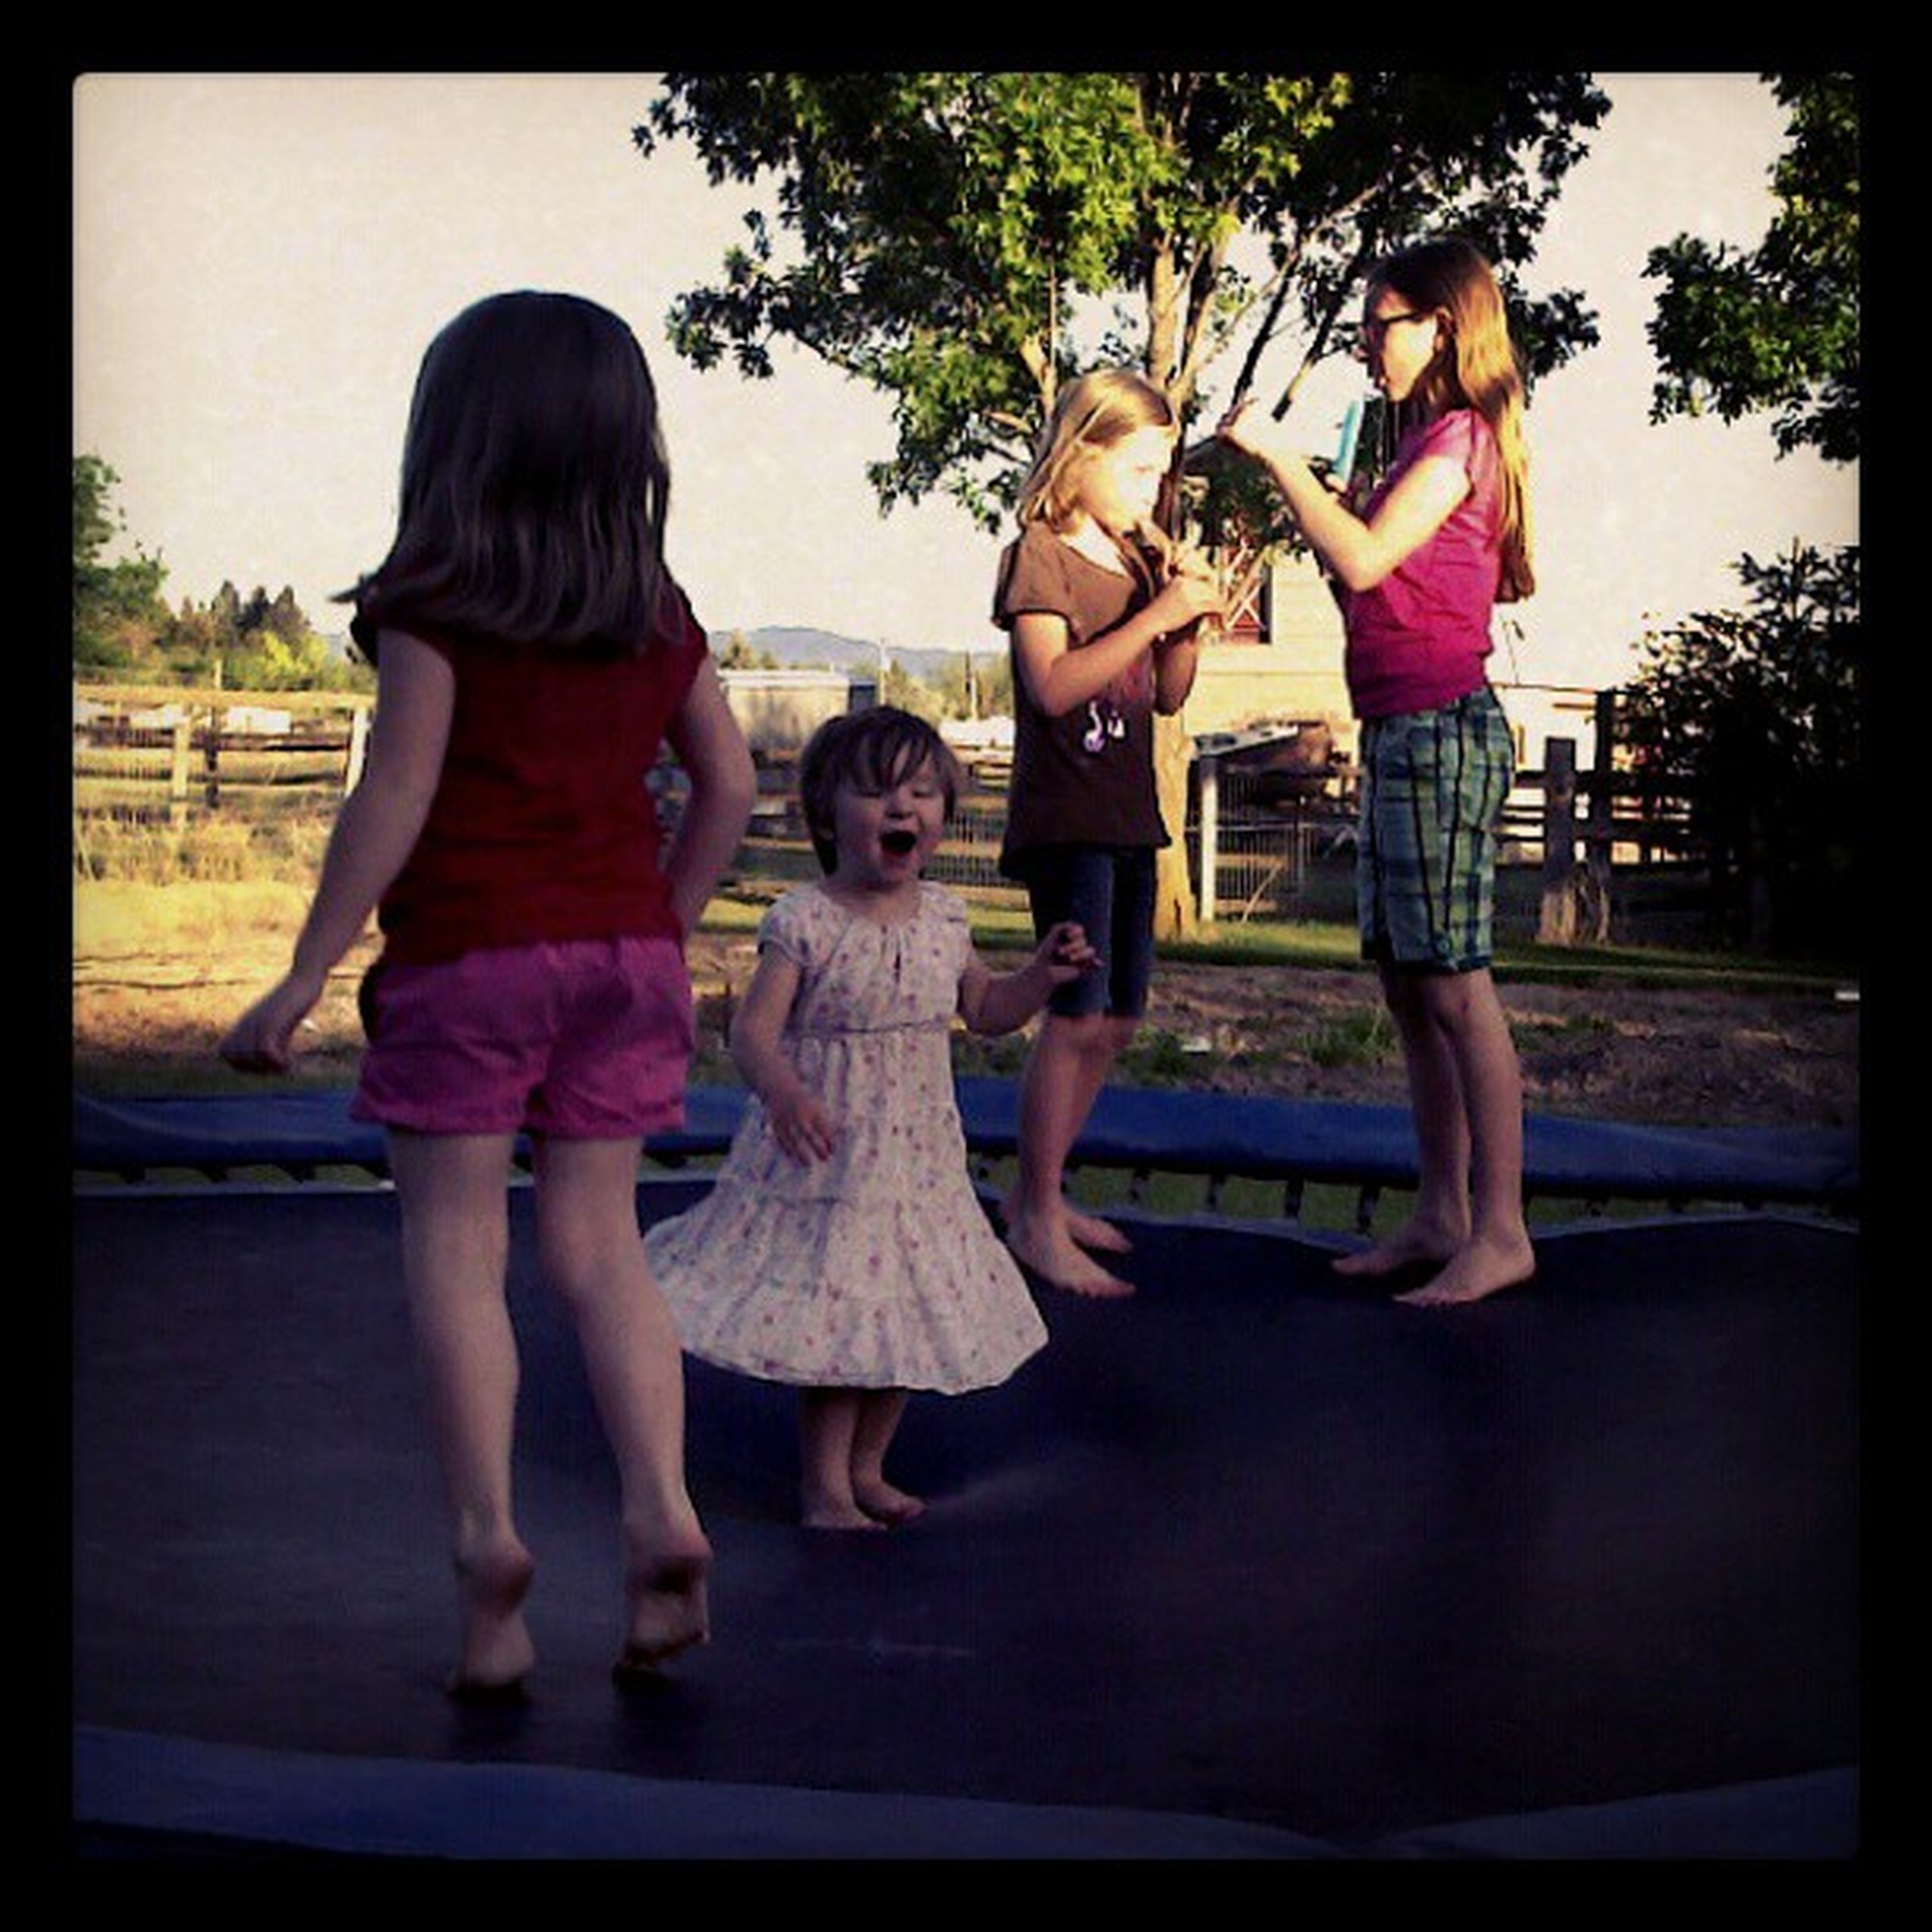 transfer print, lifestyles, leisure activity, togetherness, casual clothing, childhood, bonding, full length, love, auto post production filter, girls, person, tree, boys, standing, elementary age, fun, enjoyment